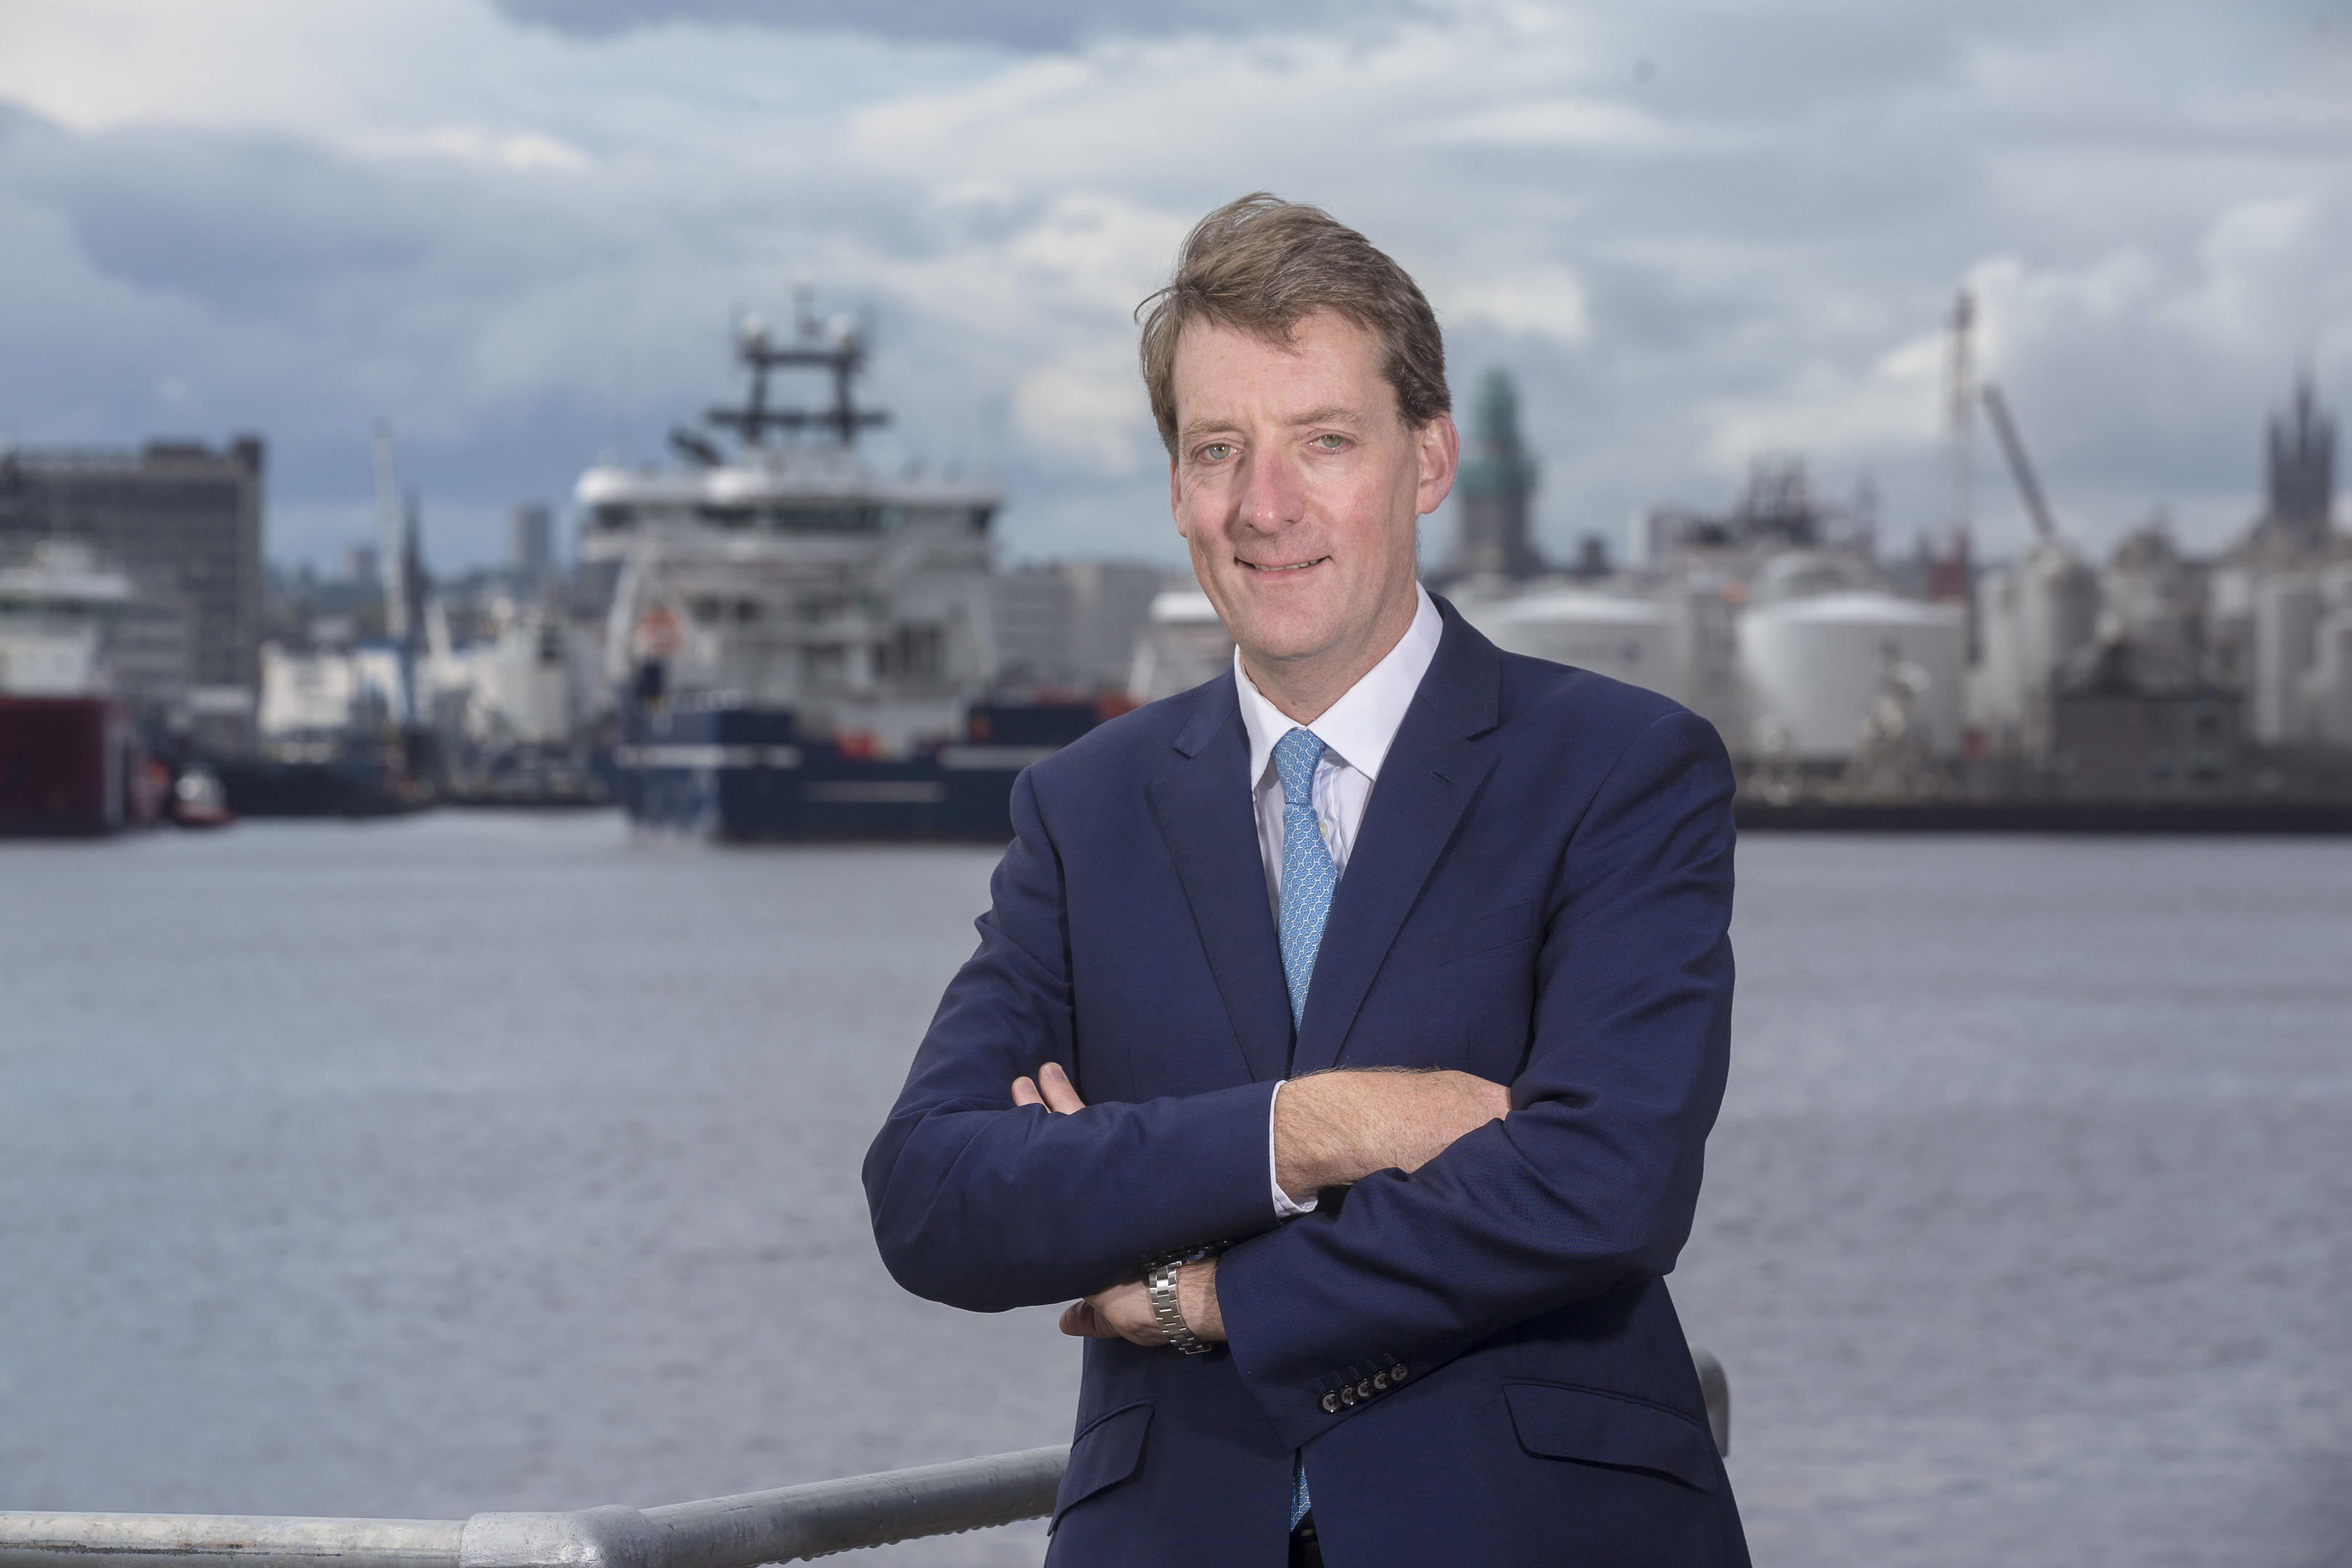 Andy Samuel, chief executive of the Oil and Gas Authority